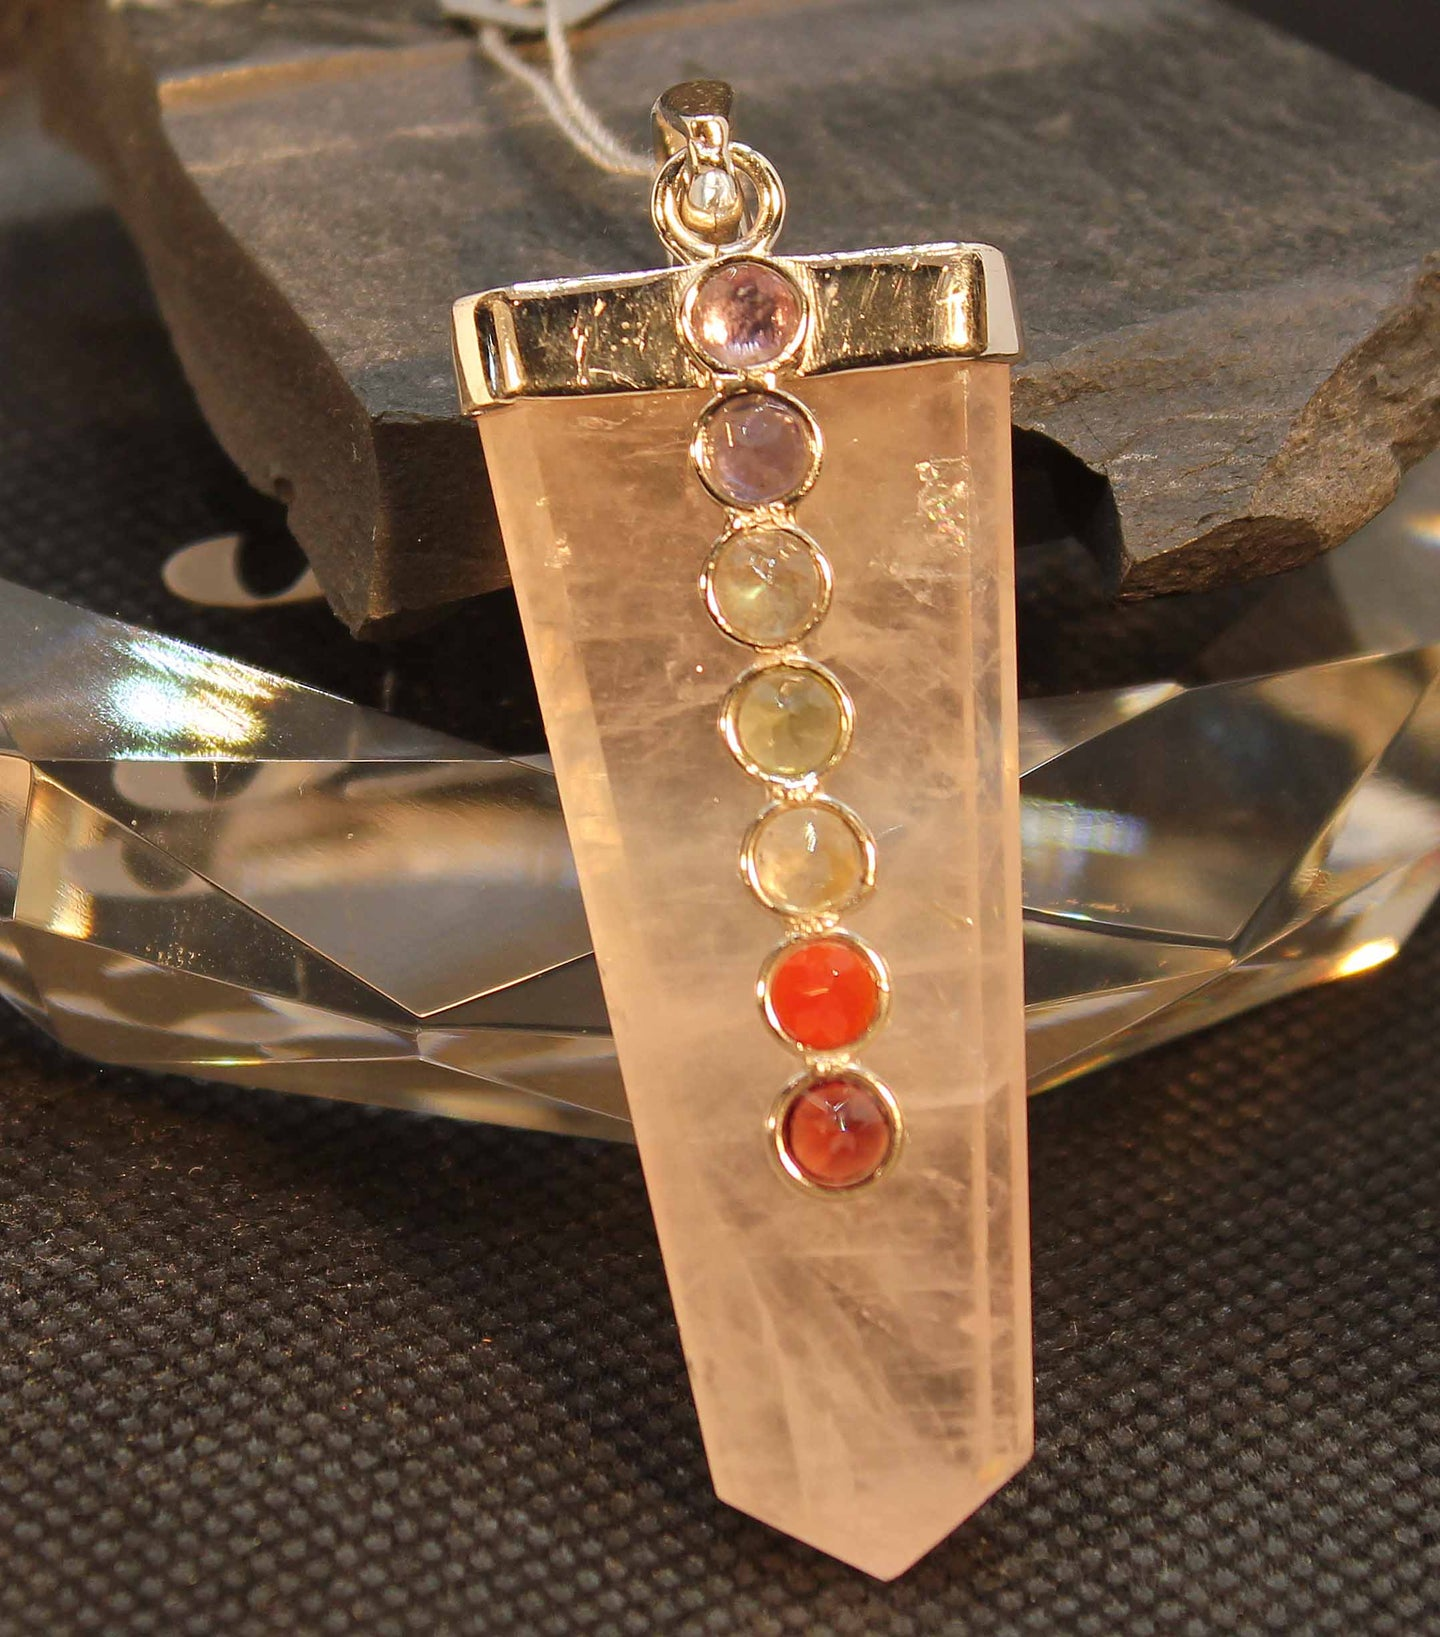 Rose quartz chakra pendant with 7 chakra genuine stones, set in sterling silver